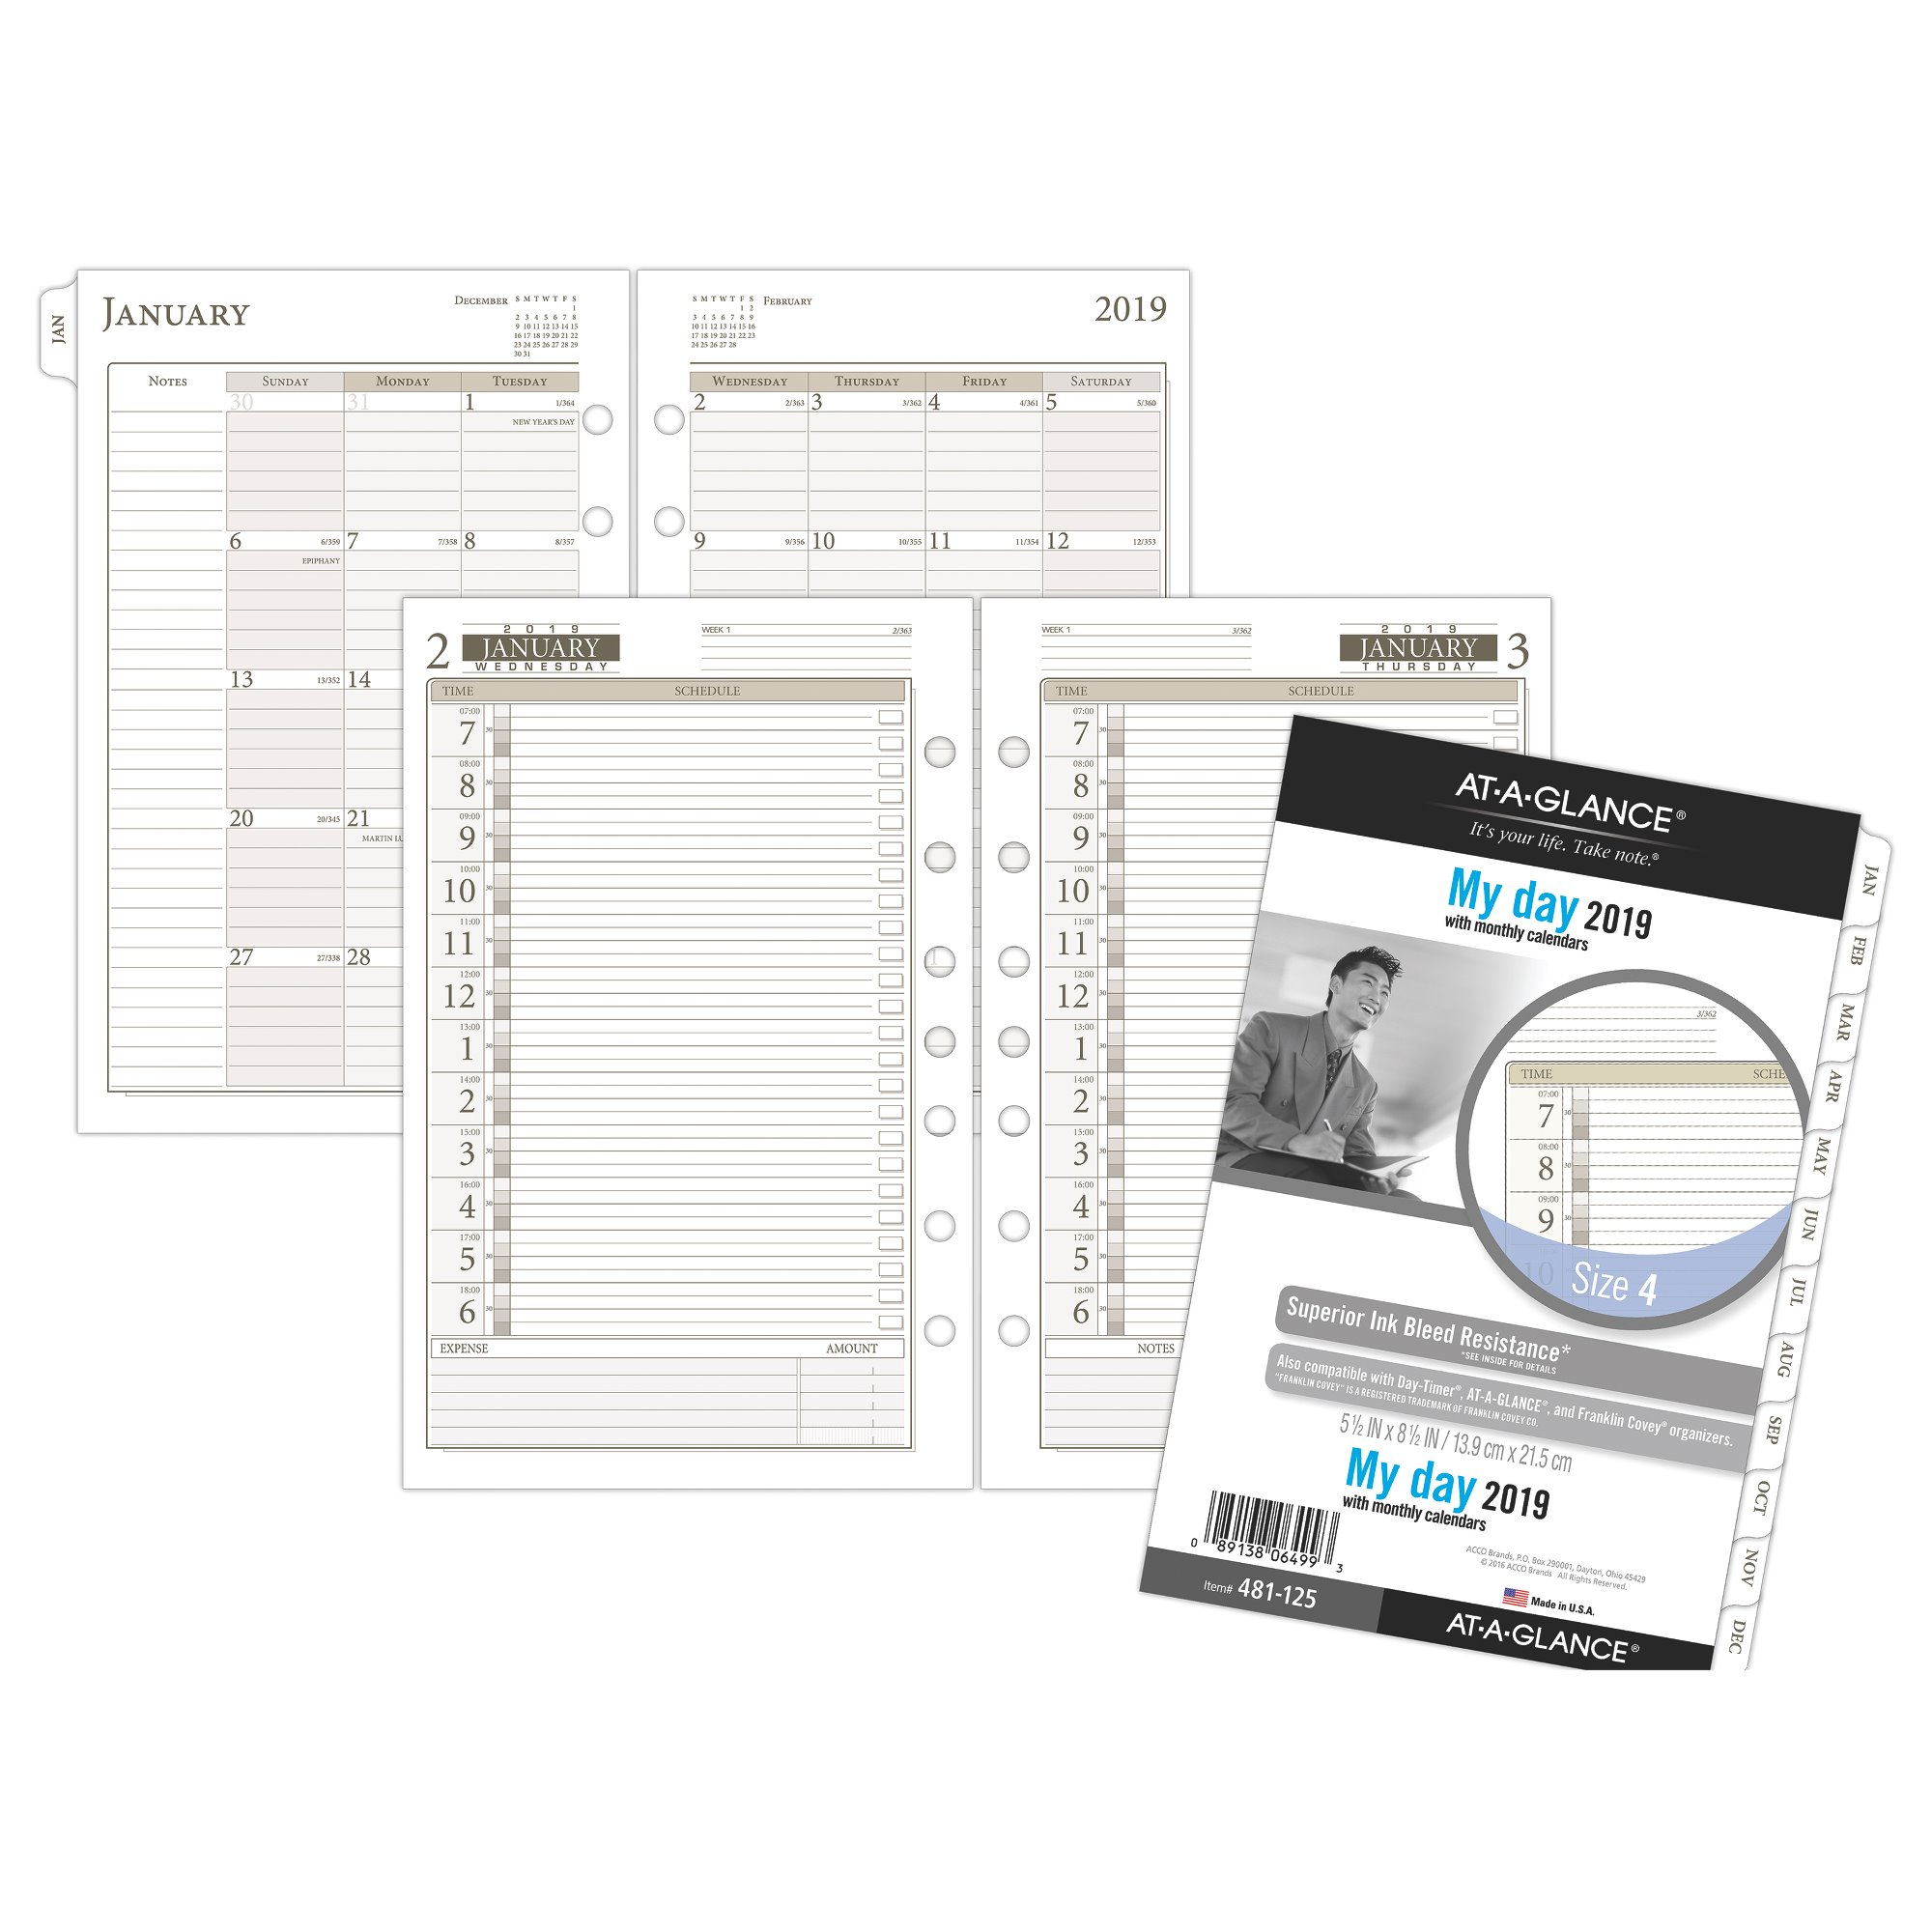 At-A-Glance Day Runner 1-Page-Per-Day Planner Refill Size 4 Daily Planner by AT-A-GLANCE Day Runner